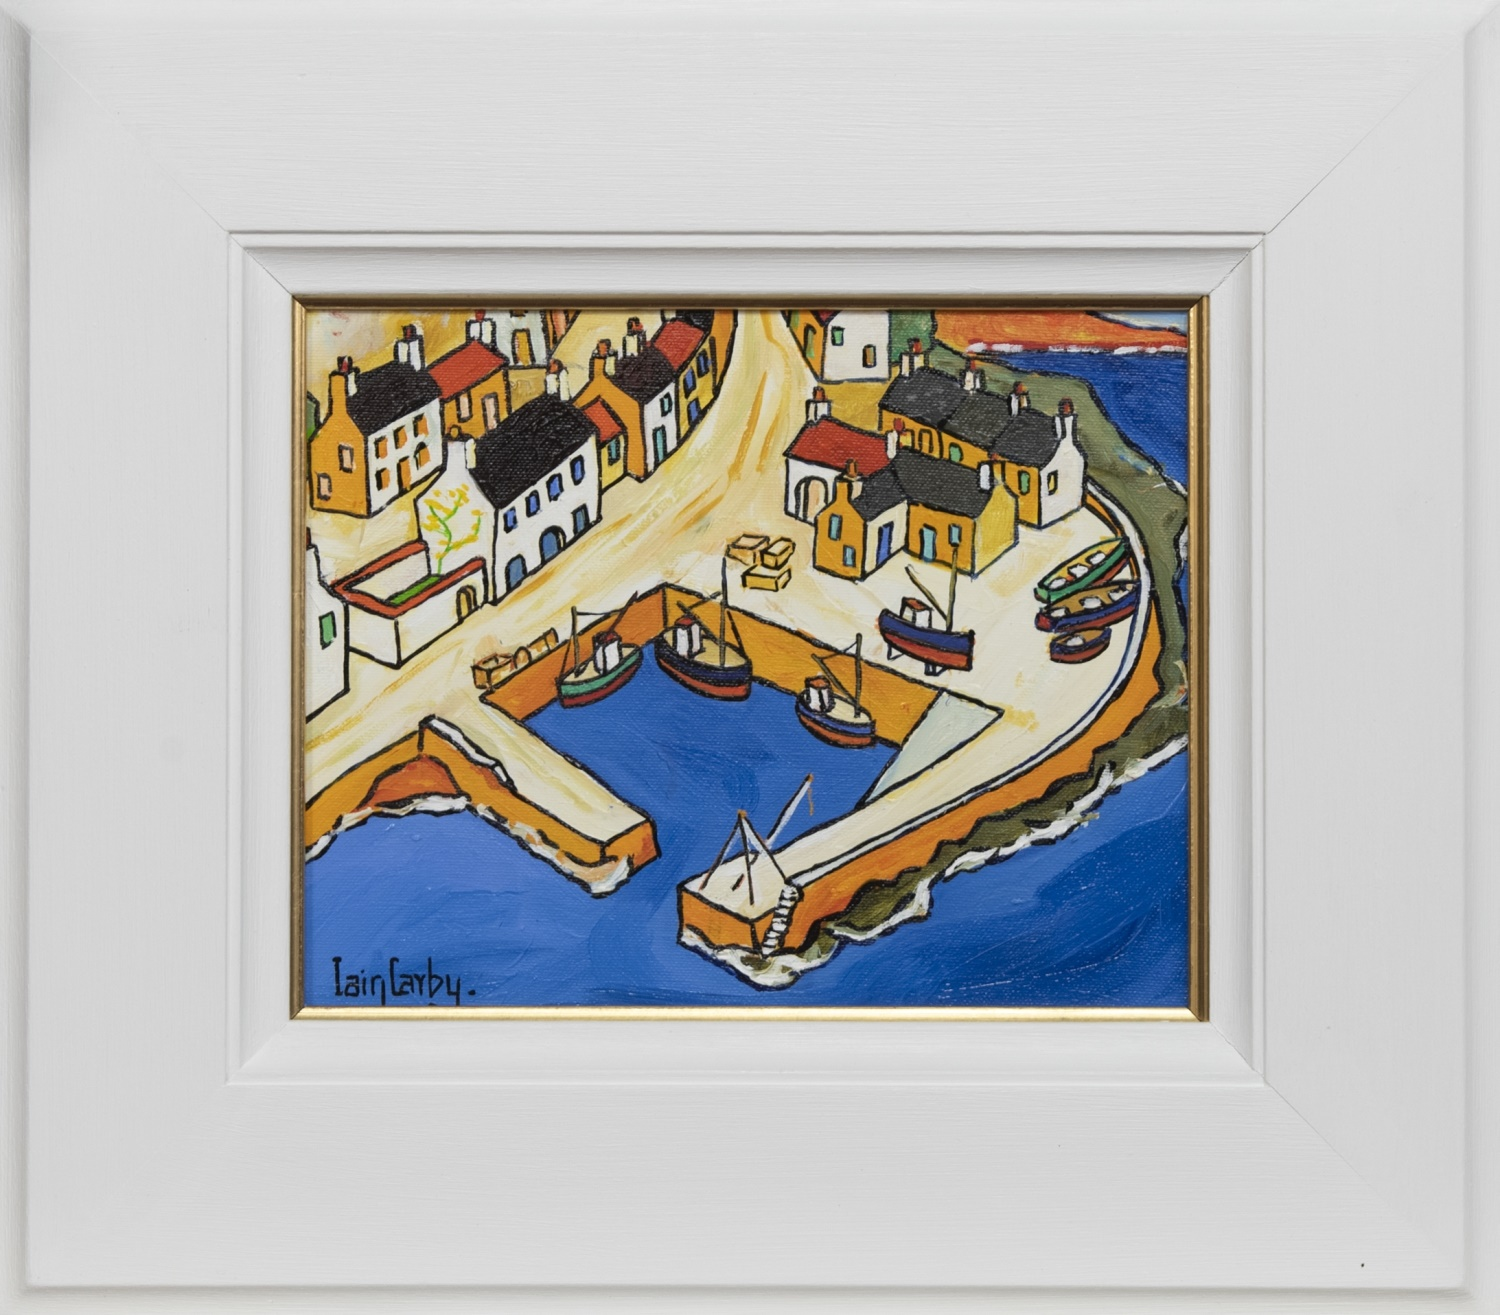 EAST NEUK HAVEN (CRAIL), IAIN CARBY